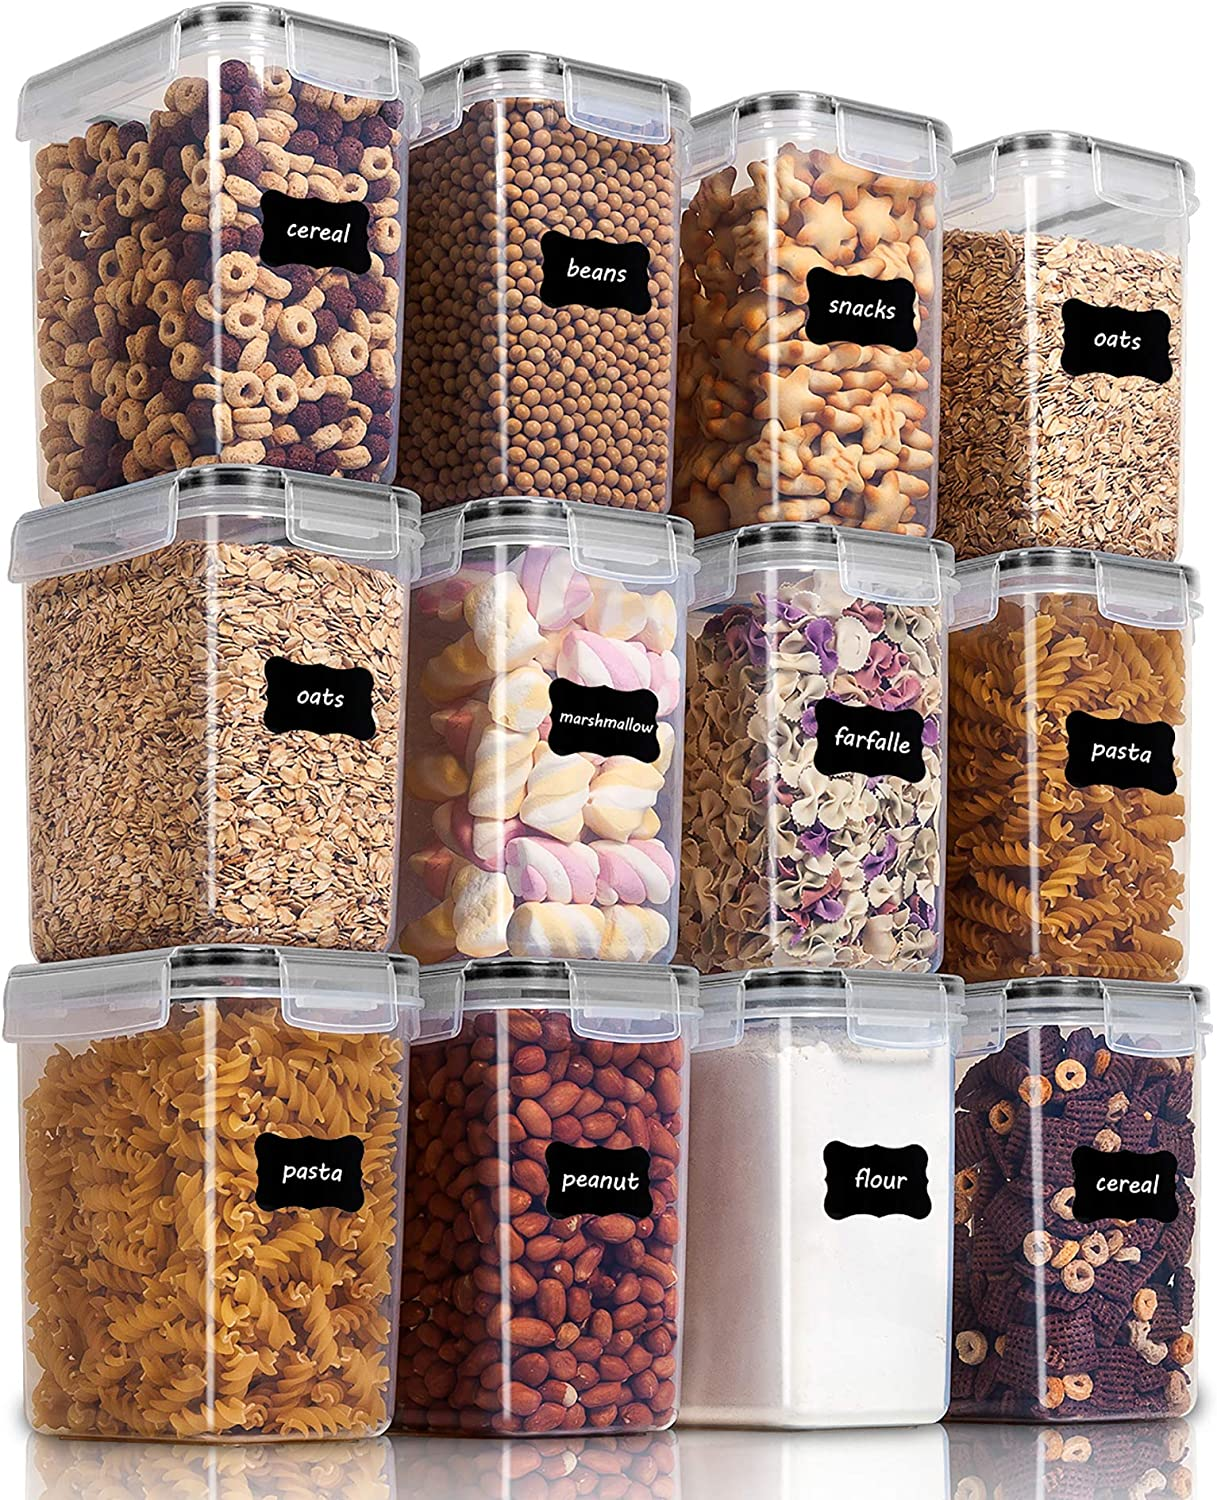 Vtopmart Airtight Food Storage Containers 12 Pieces 1.5qt / 1.6L- Plastic PBA Free Kitchen Pantry Storage Containers for Sugar, Flour and Baking Supplies - Dishwasher Safe - Include 24 Labels, Black